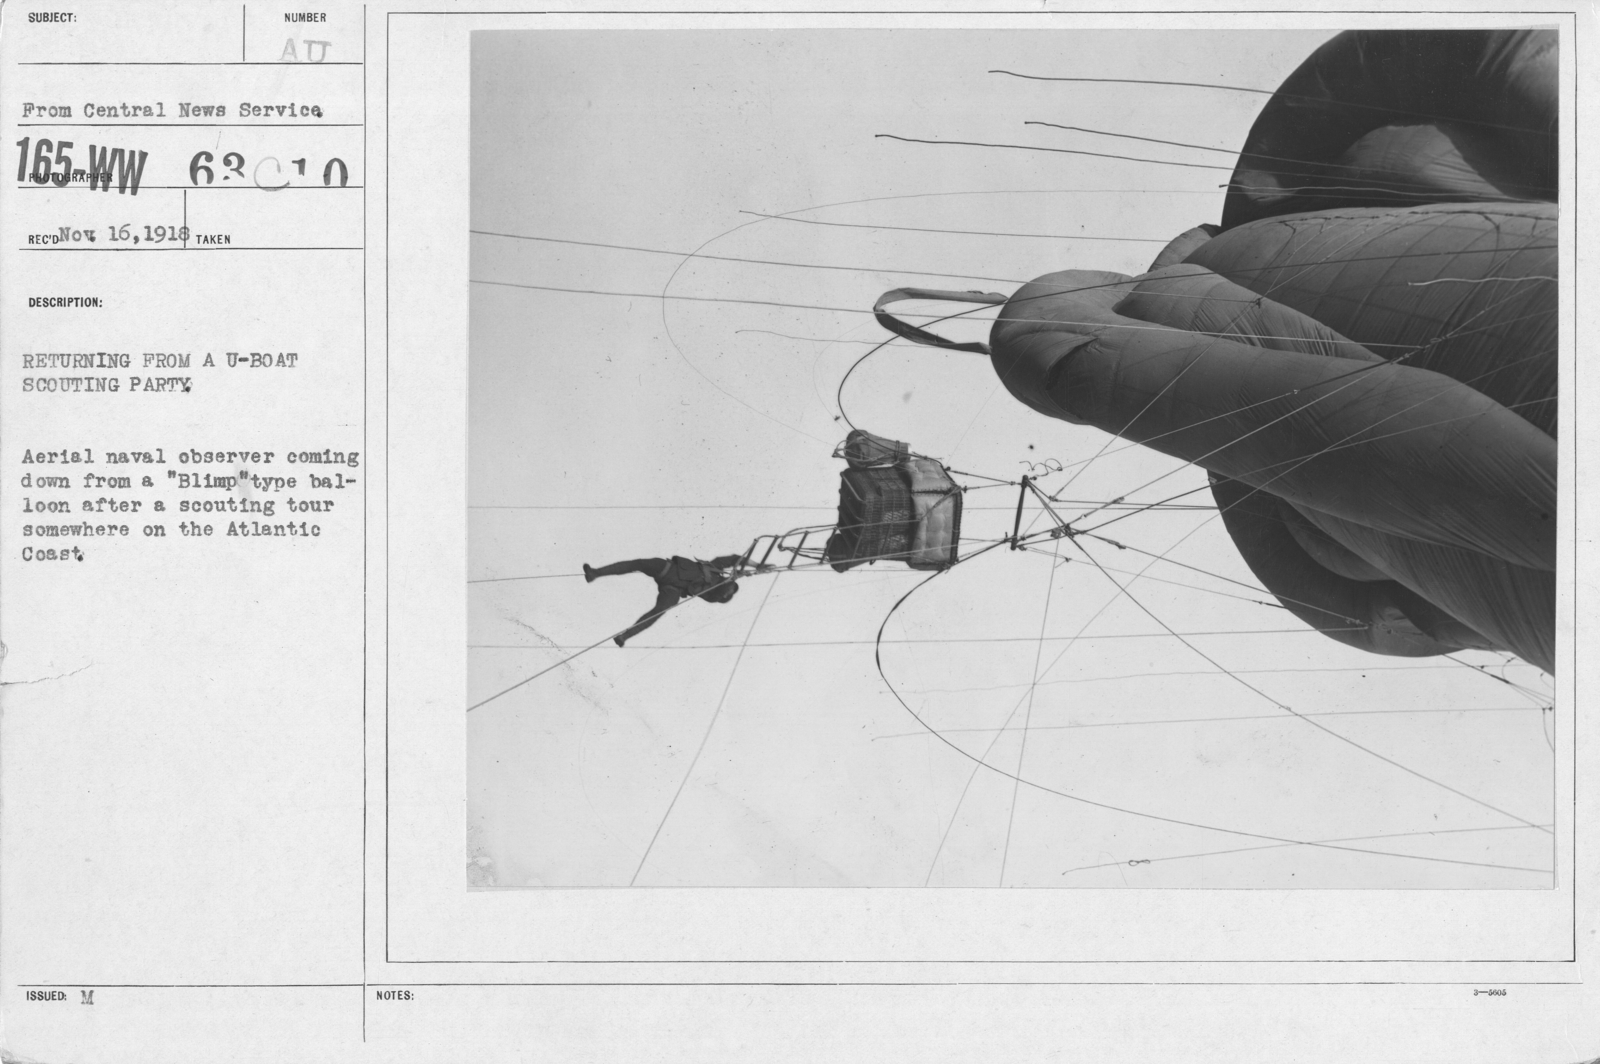 """Balloons - Flights - Returning from a U-boat scouting party. Aerial naval observer coming down from a """"Blimp"""" type balloon after a scouting tour somewhereo n the Atlantic Coast"""